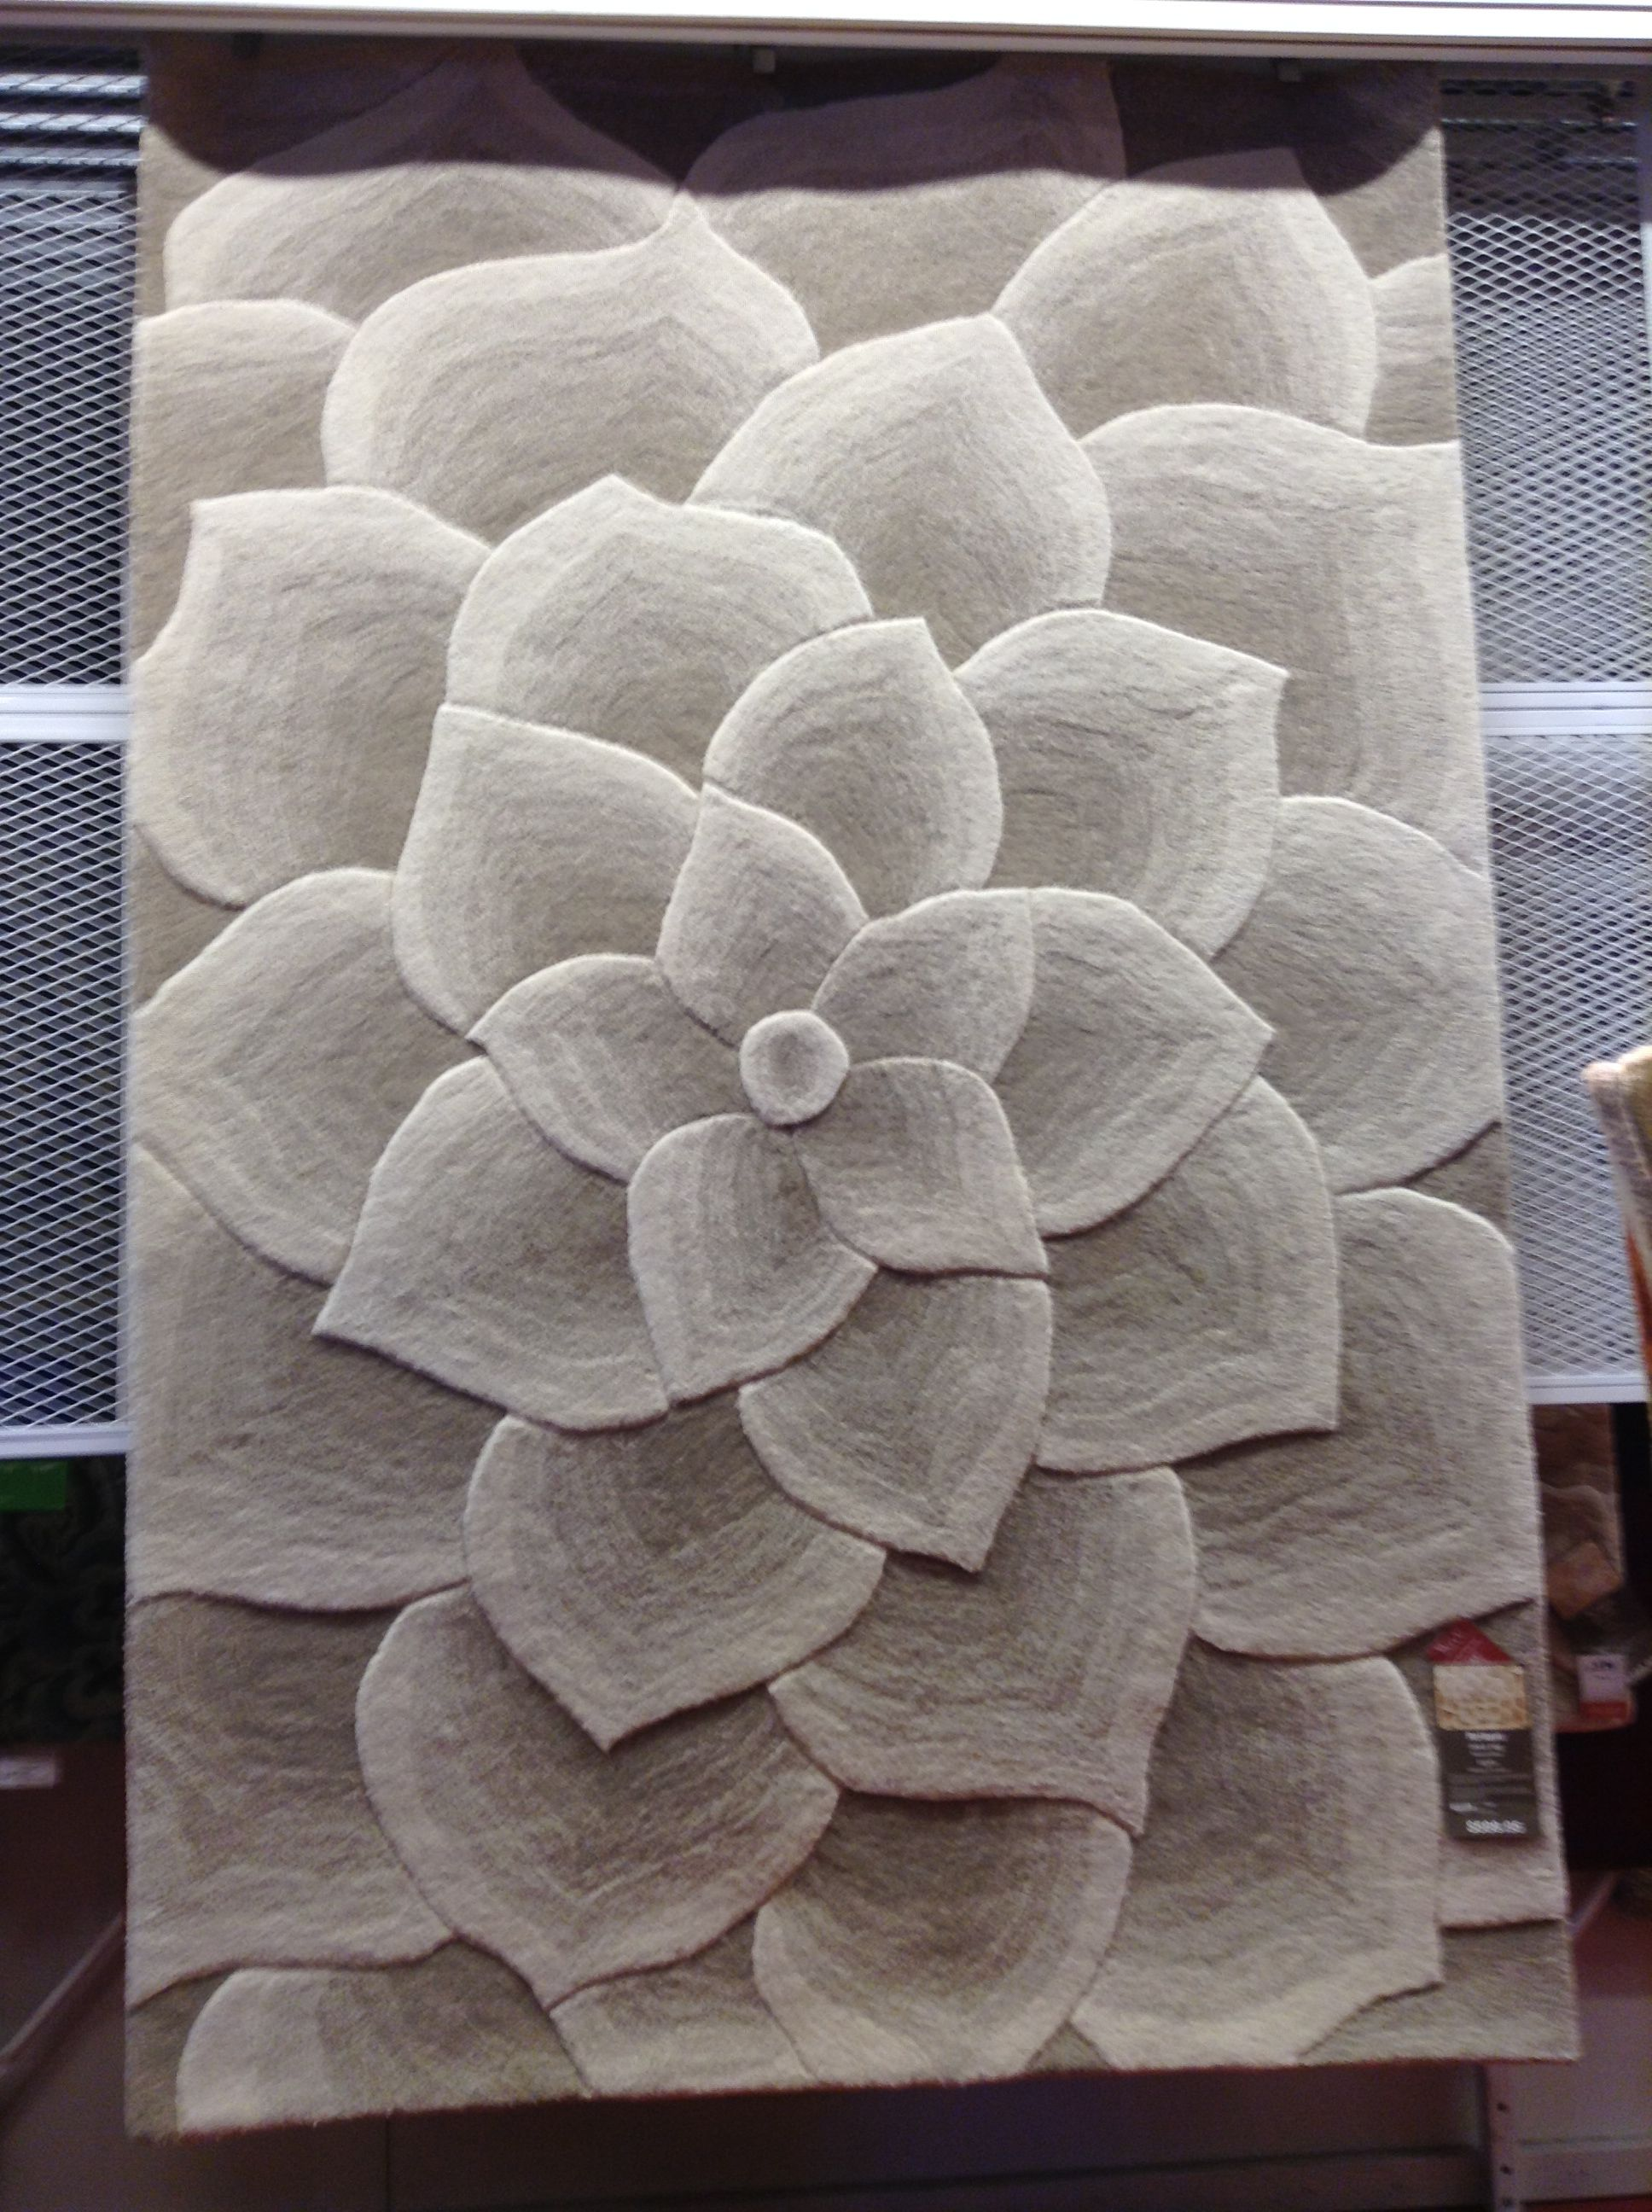 Lotus Rug At Pier 1 Imports Home Decor Outdoor Area Rugs